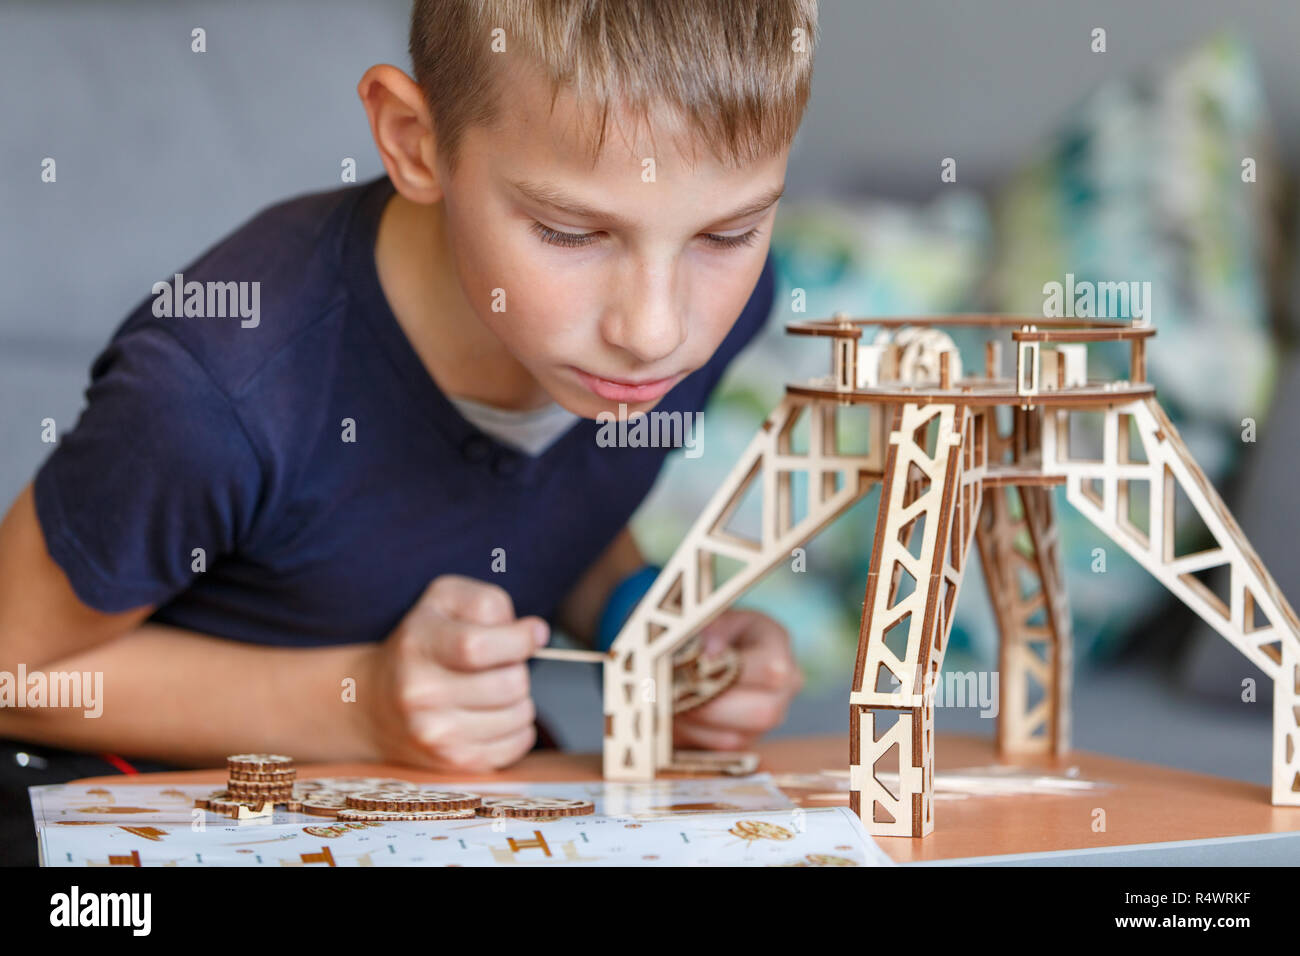 Young boy playing with wooden constructor. Eco building toy set background - Stock Image